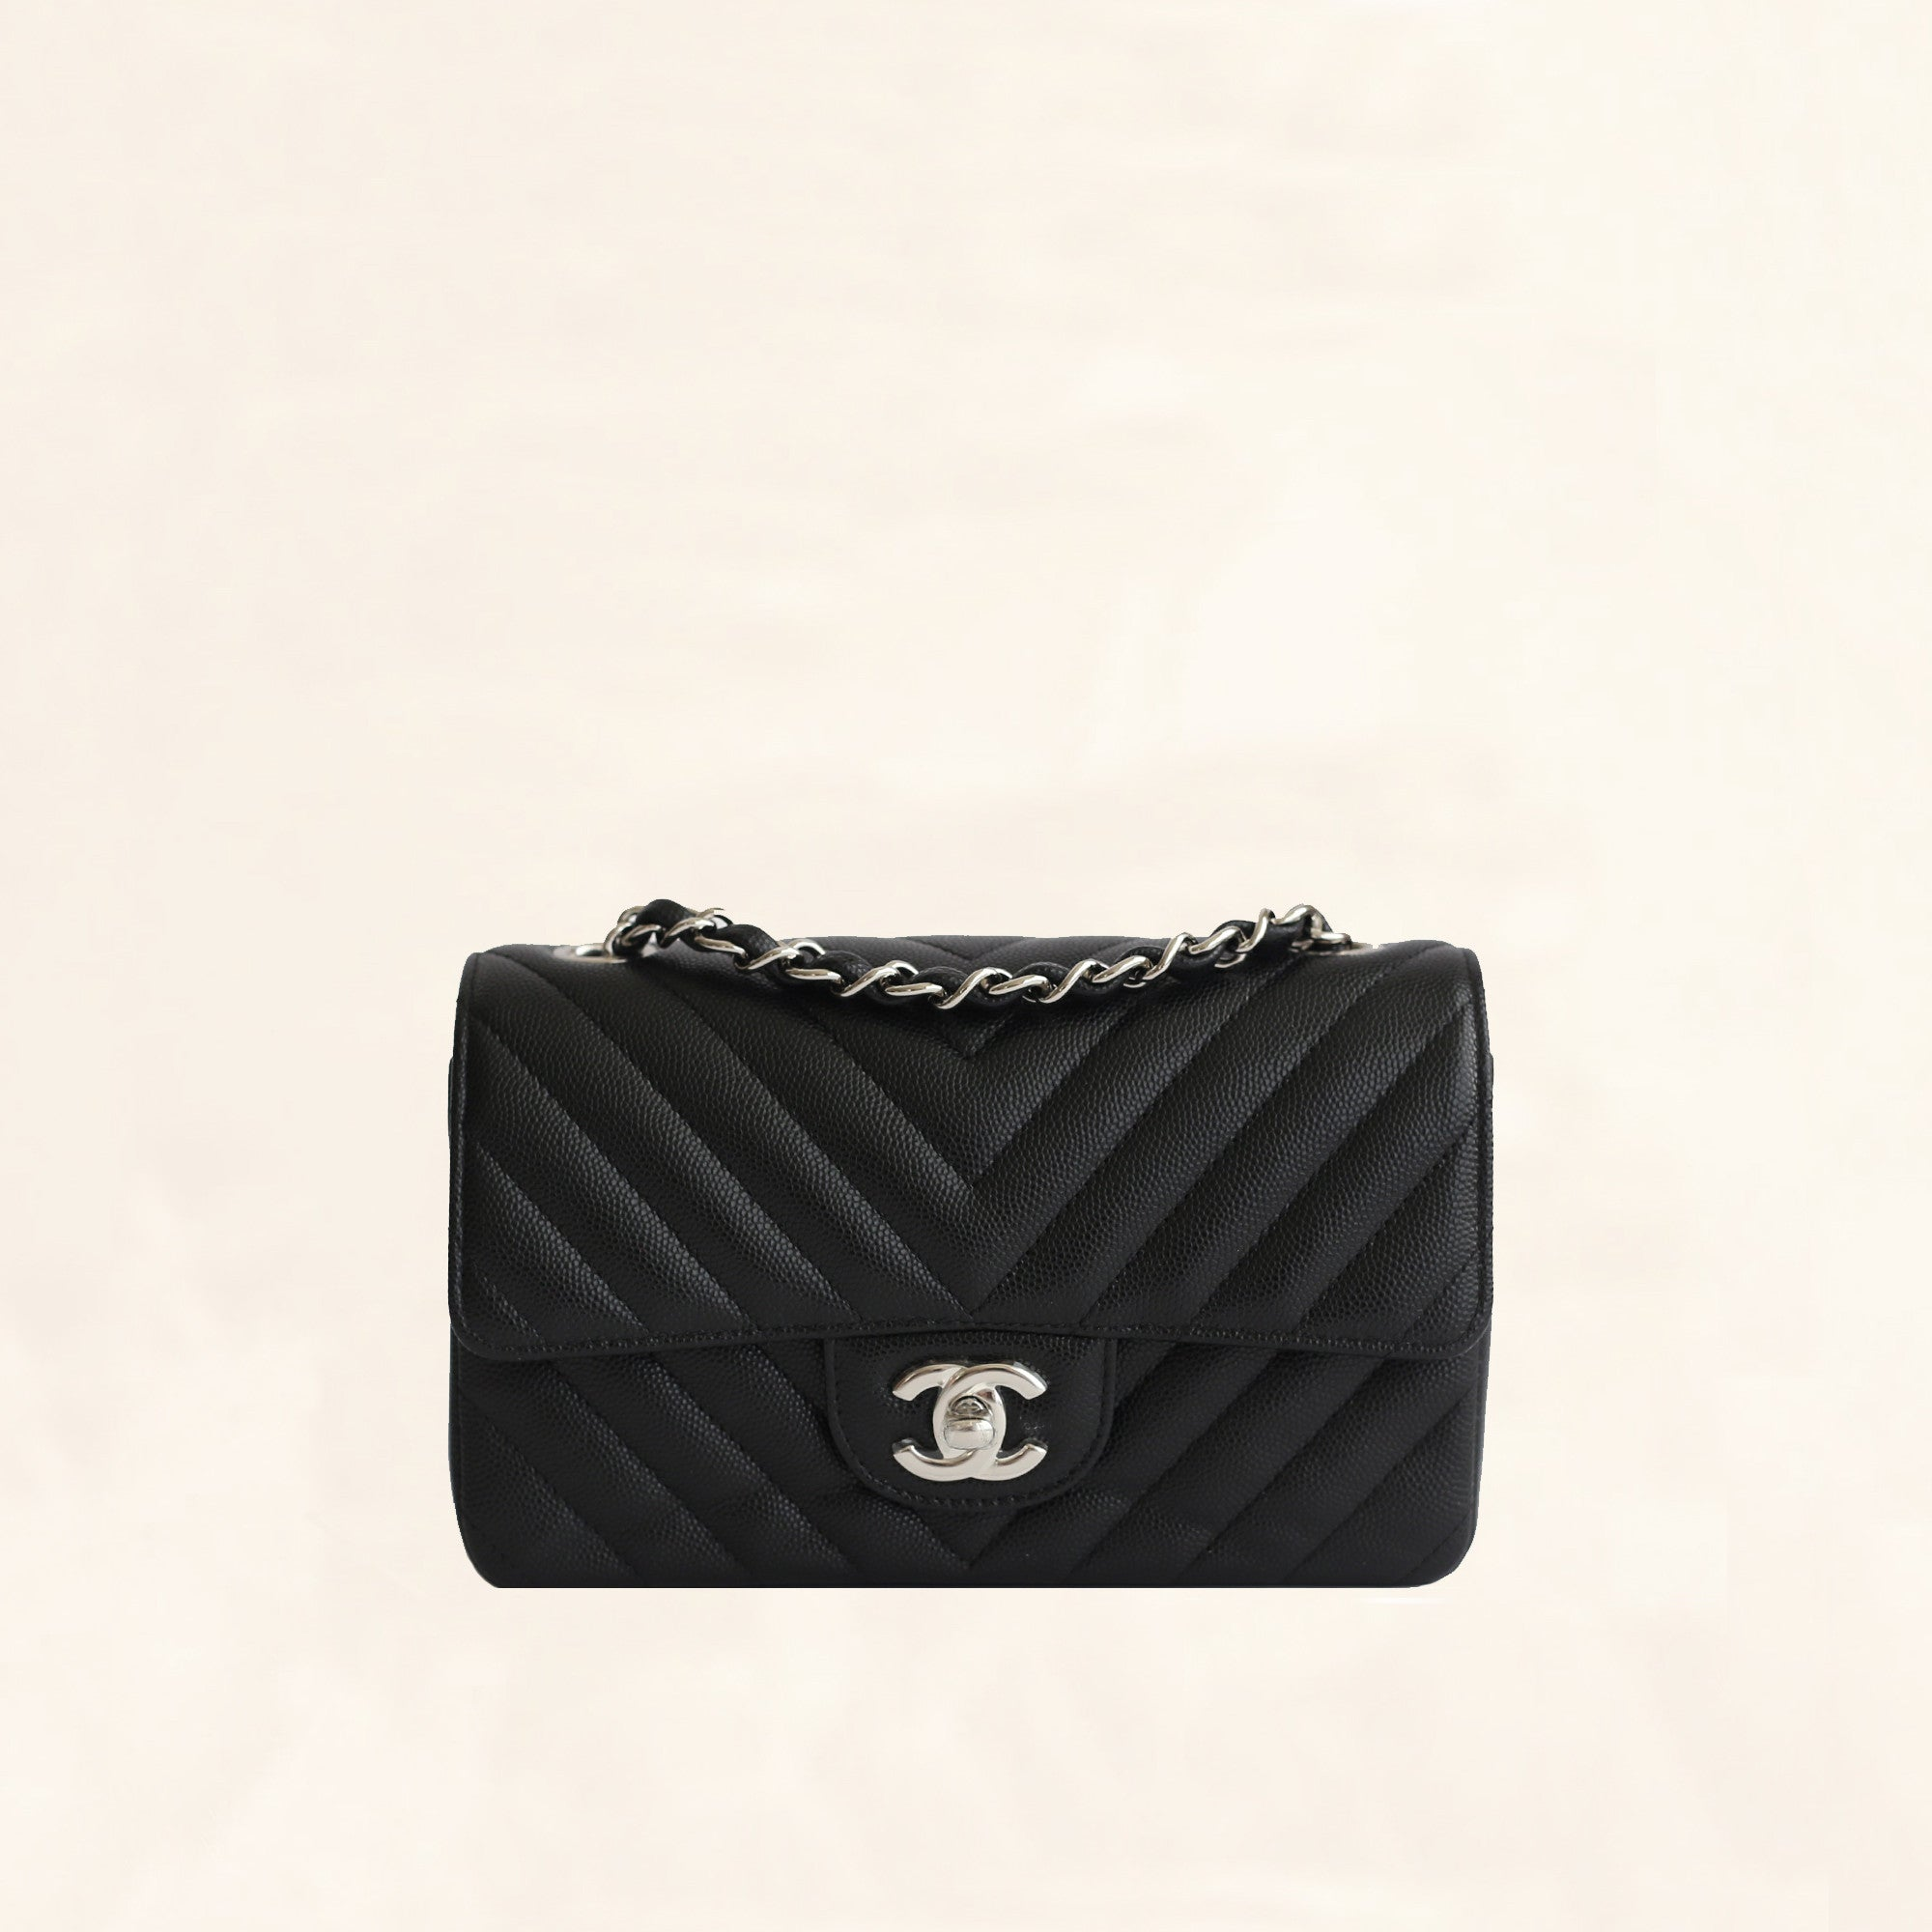 591510a56207 Chanel | Caviar Rectangular Flap Bag | Mini - The-Collectory